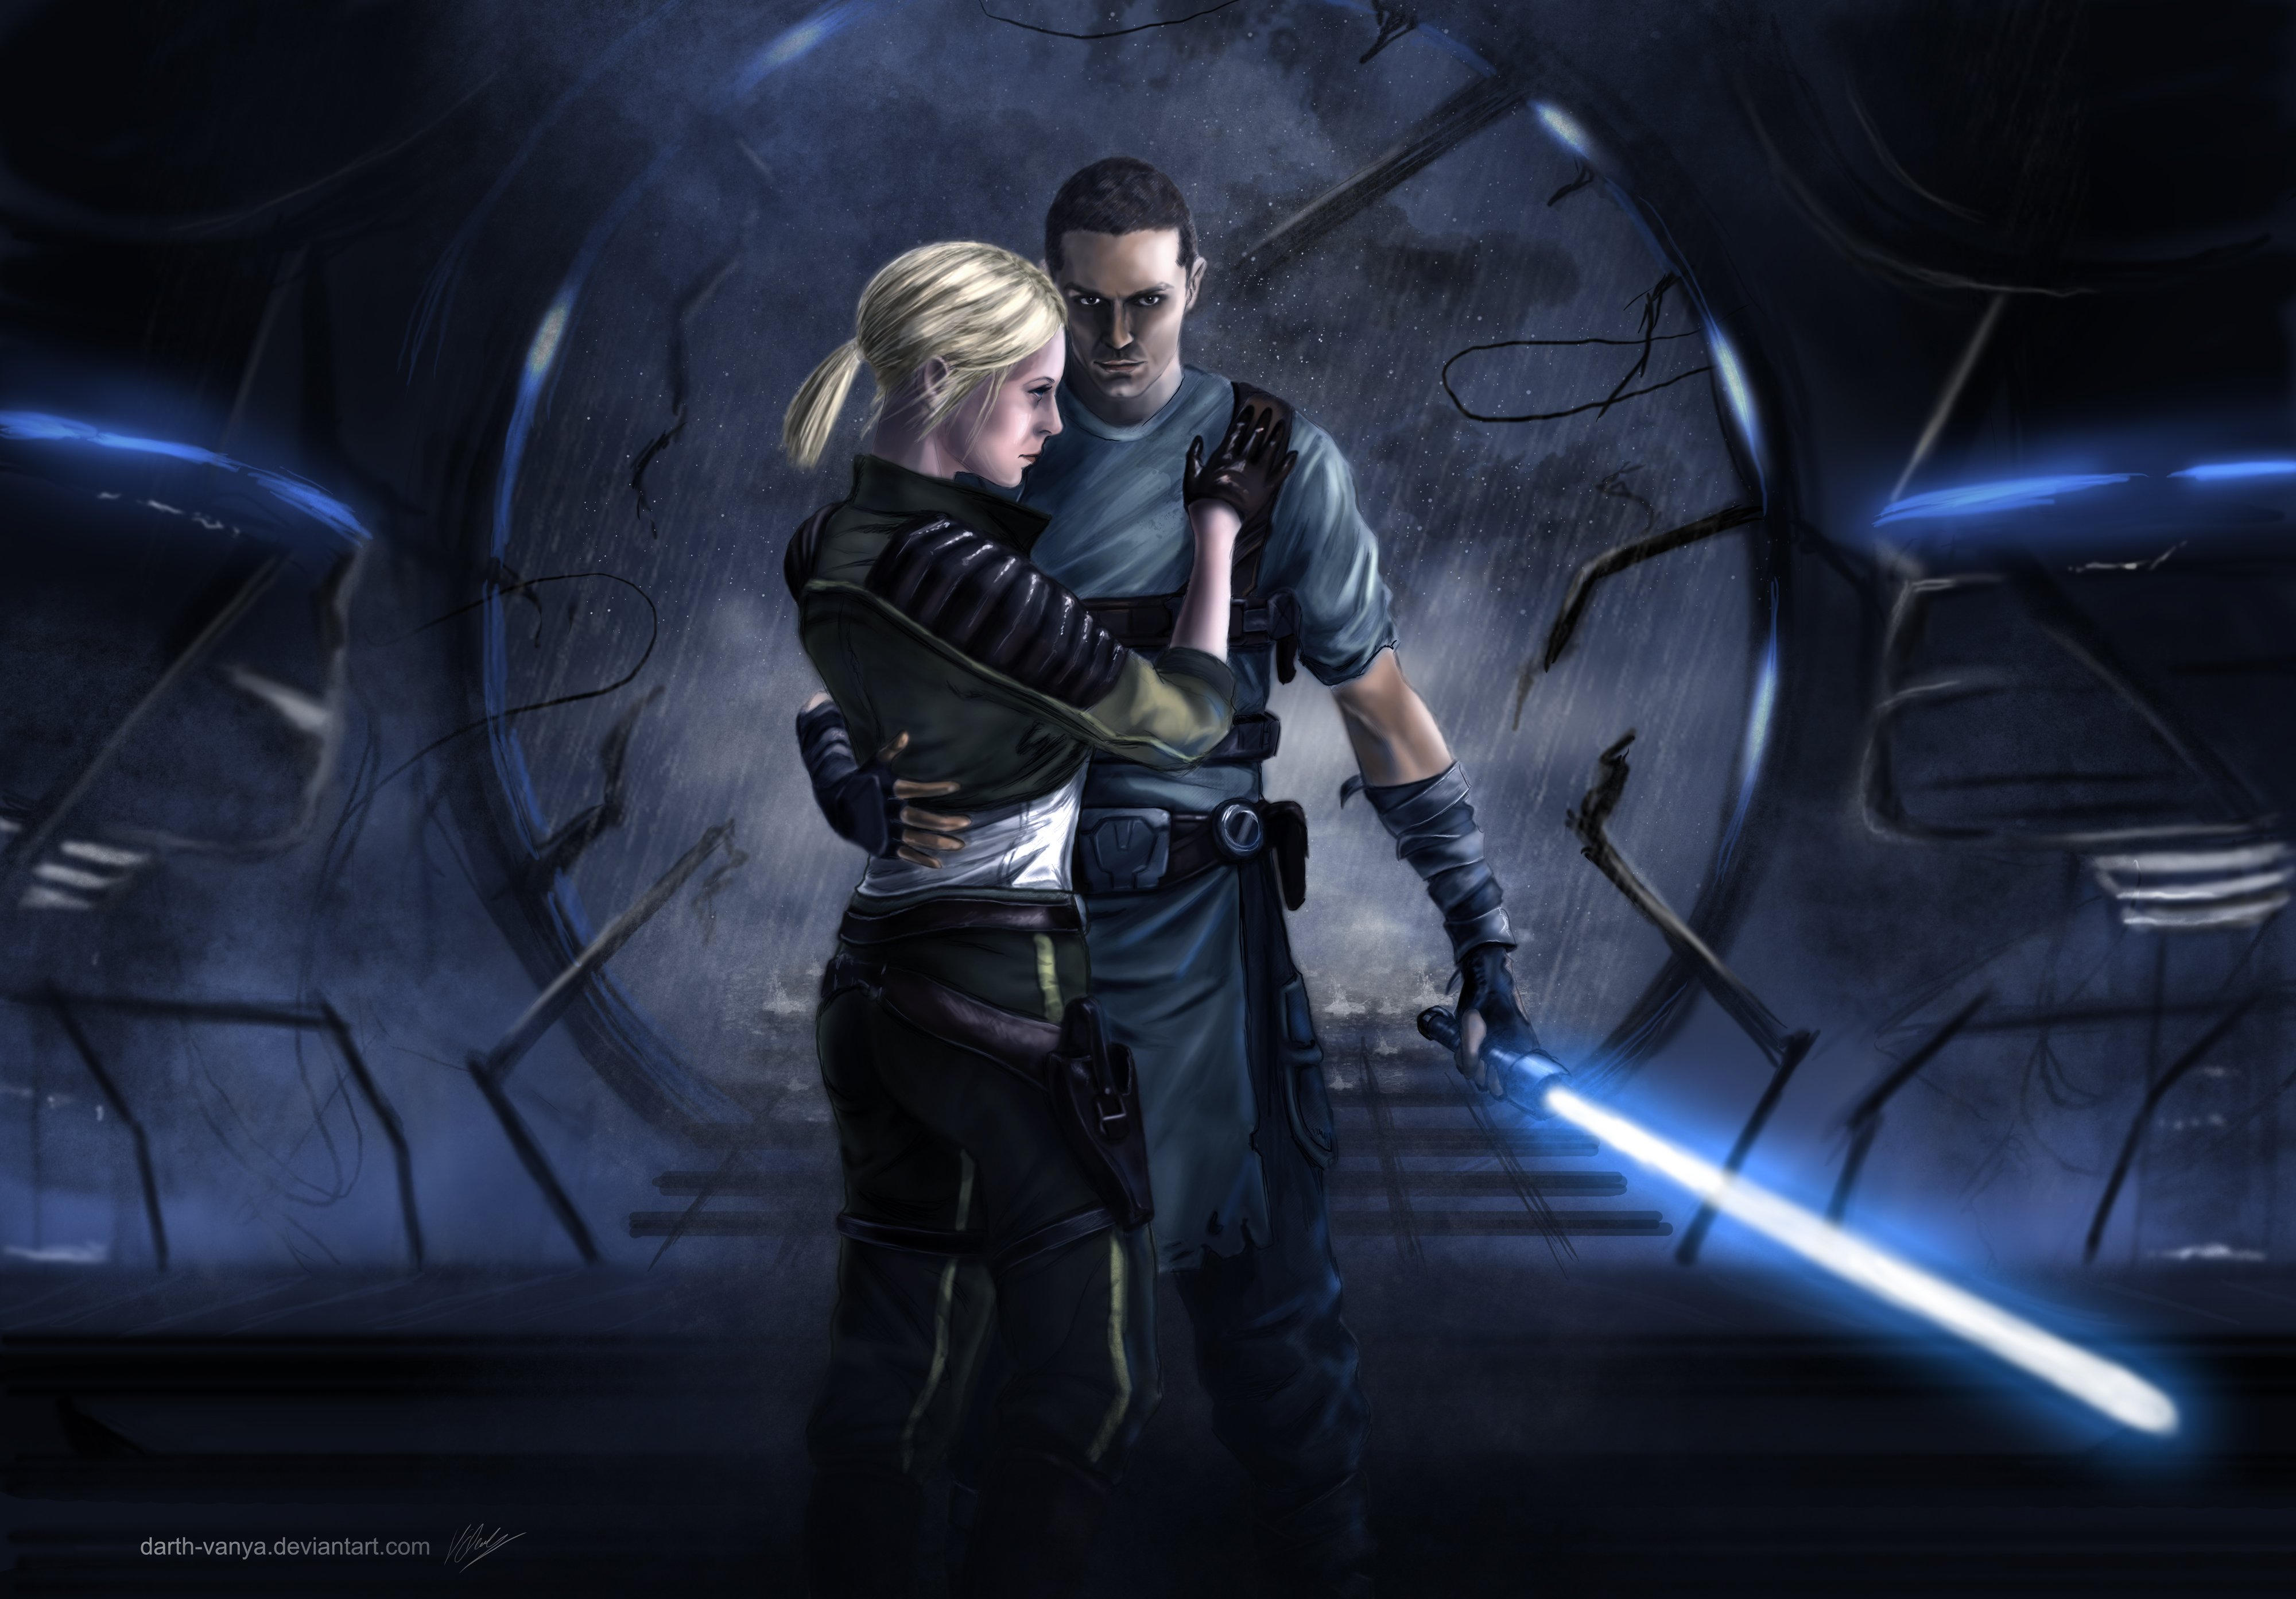 STAR WARS Force Unleashed sci-fi futuristic action ...